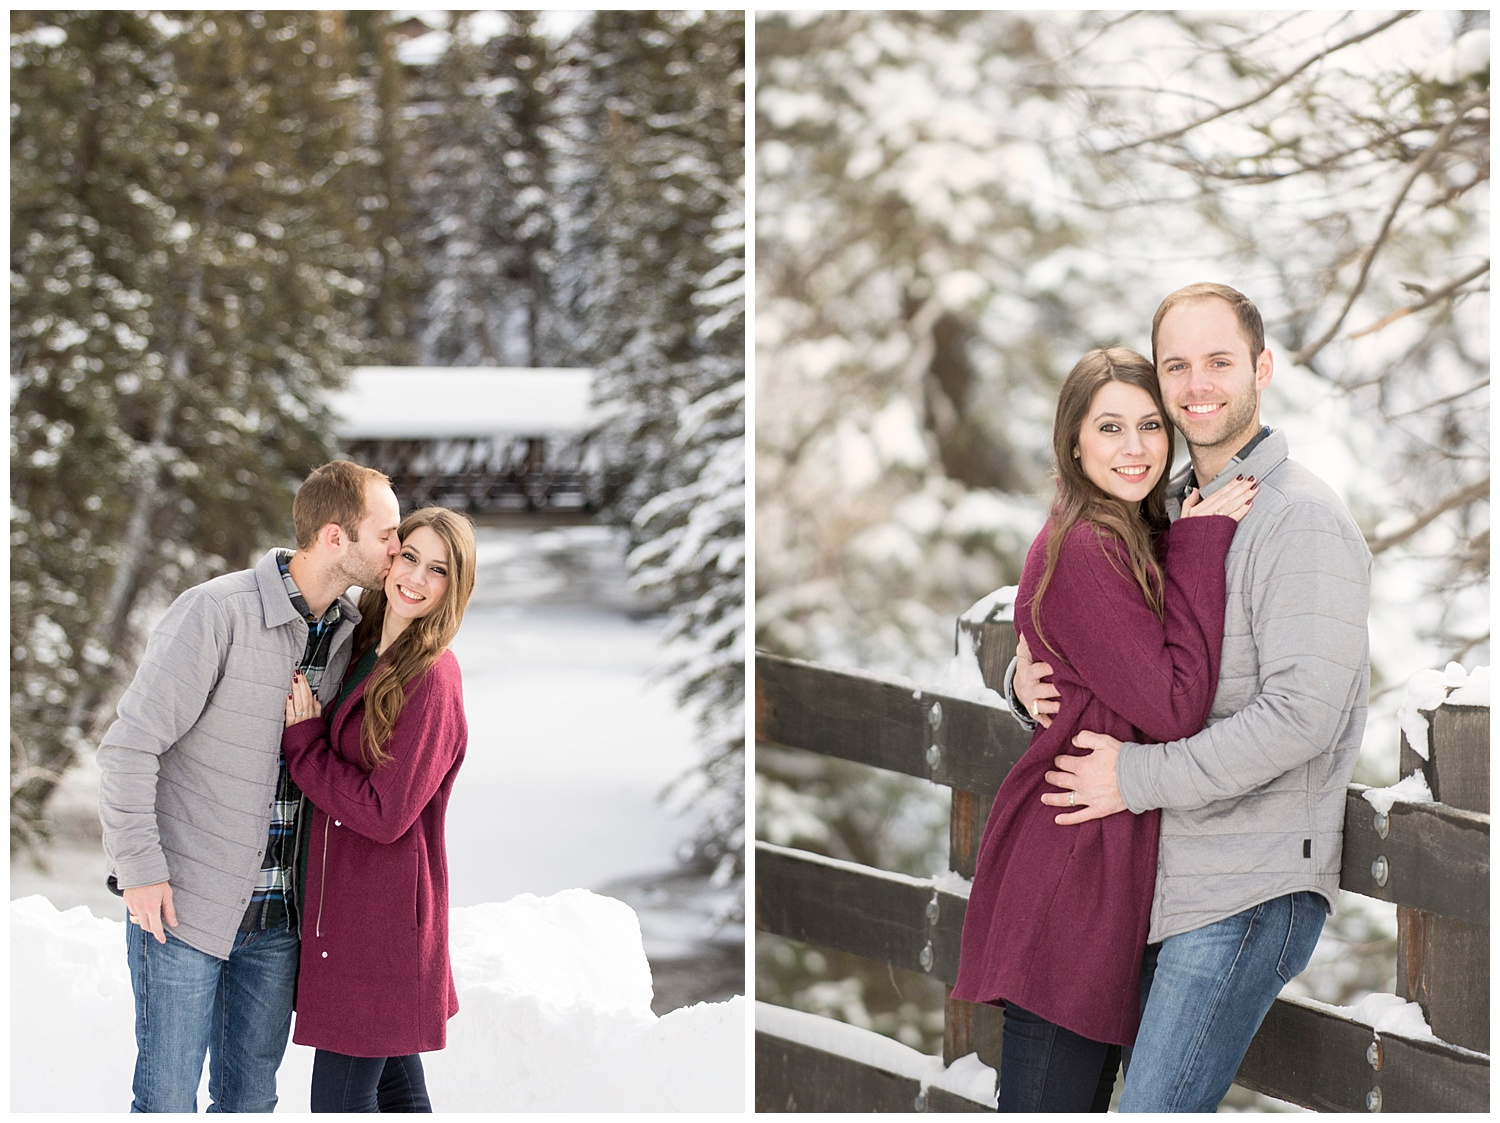 Breckenridge_Colorado_Engagement_Photographer_Ski_Resort_Mountain_Town_Photography_Engagement_Photos_001.jpg